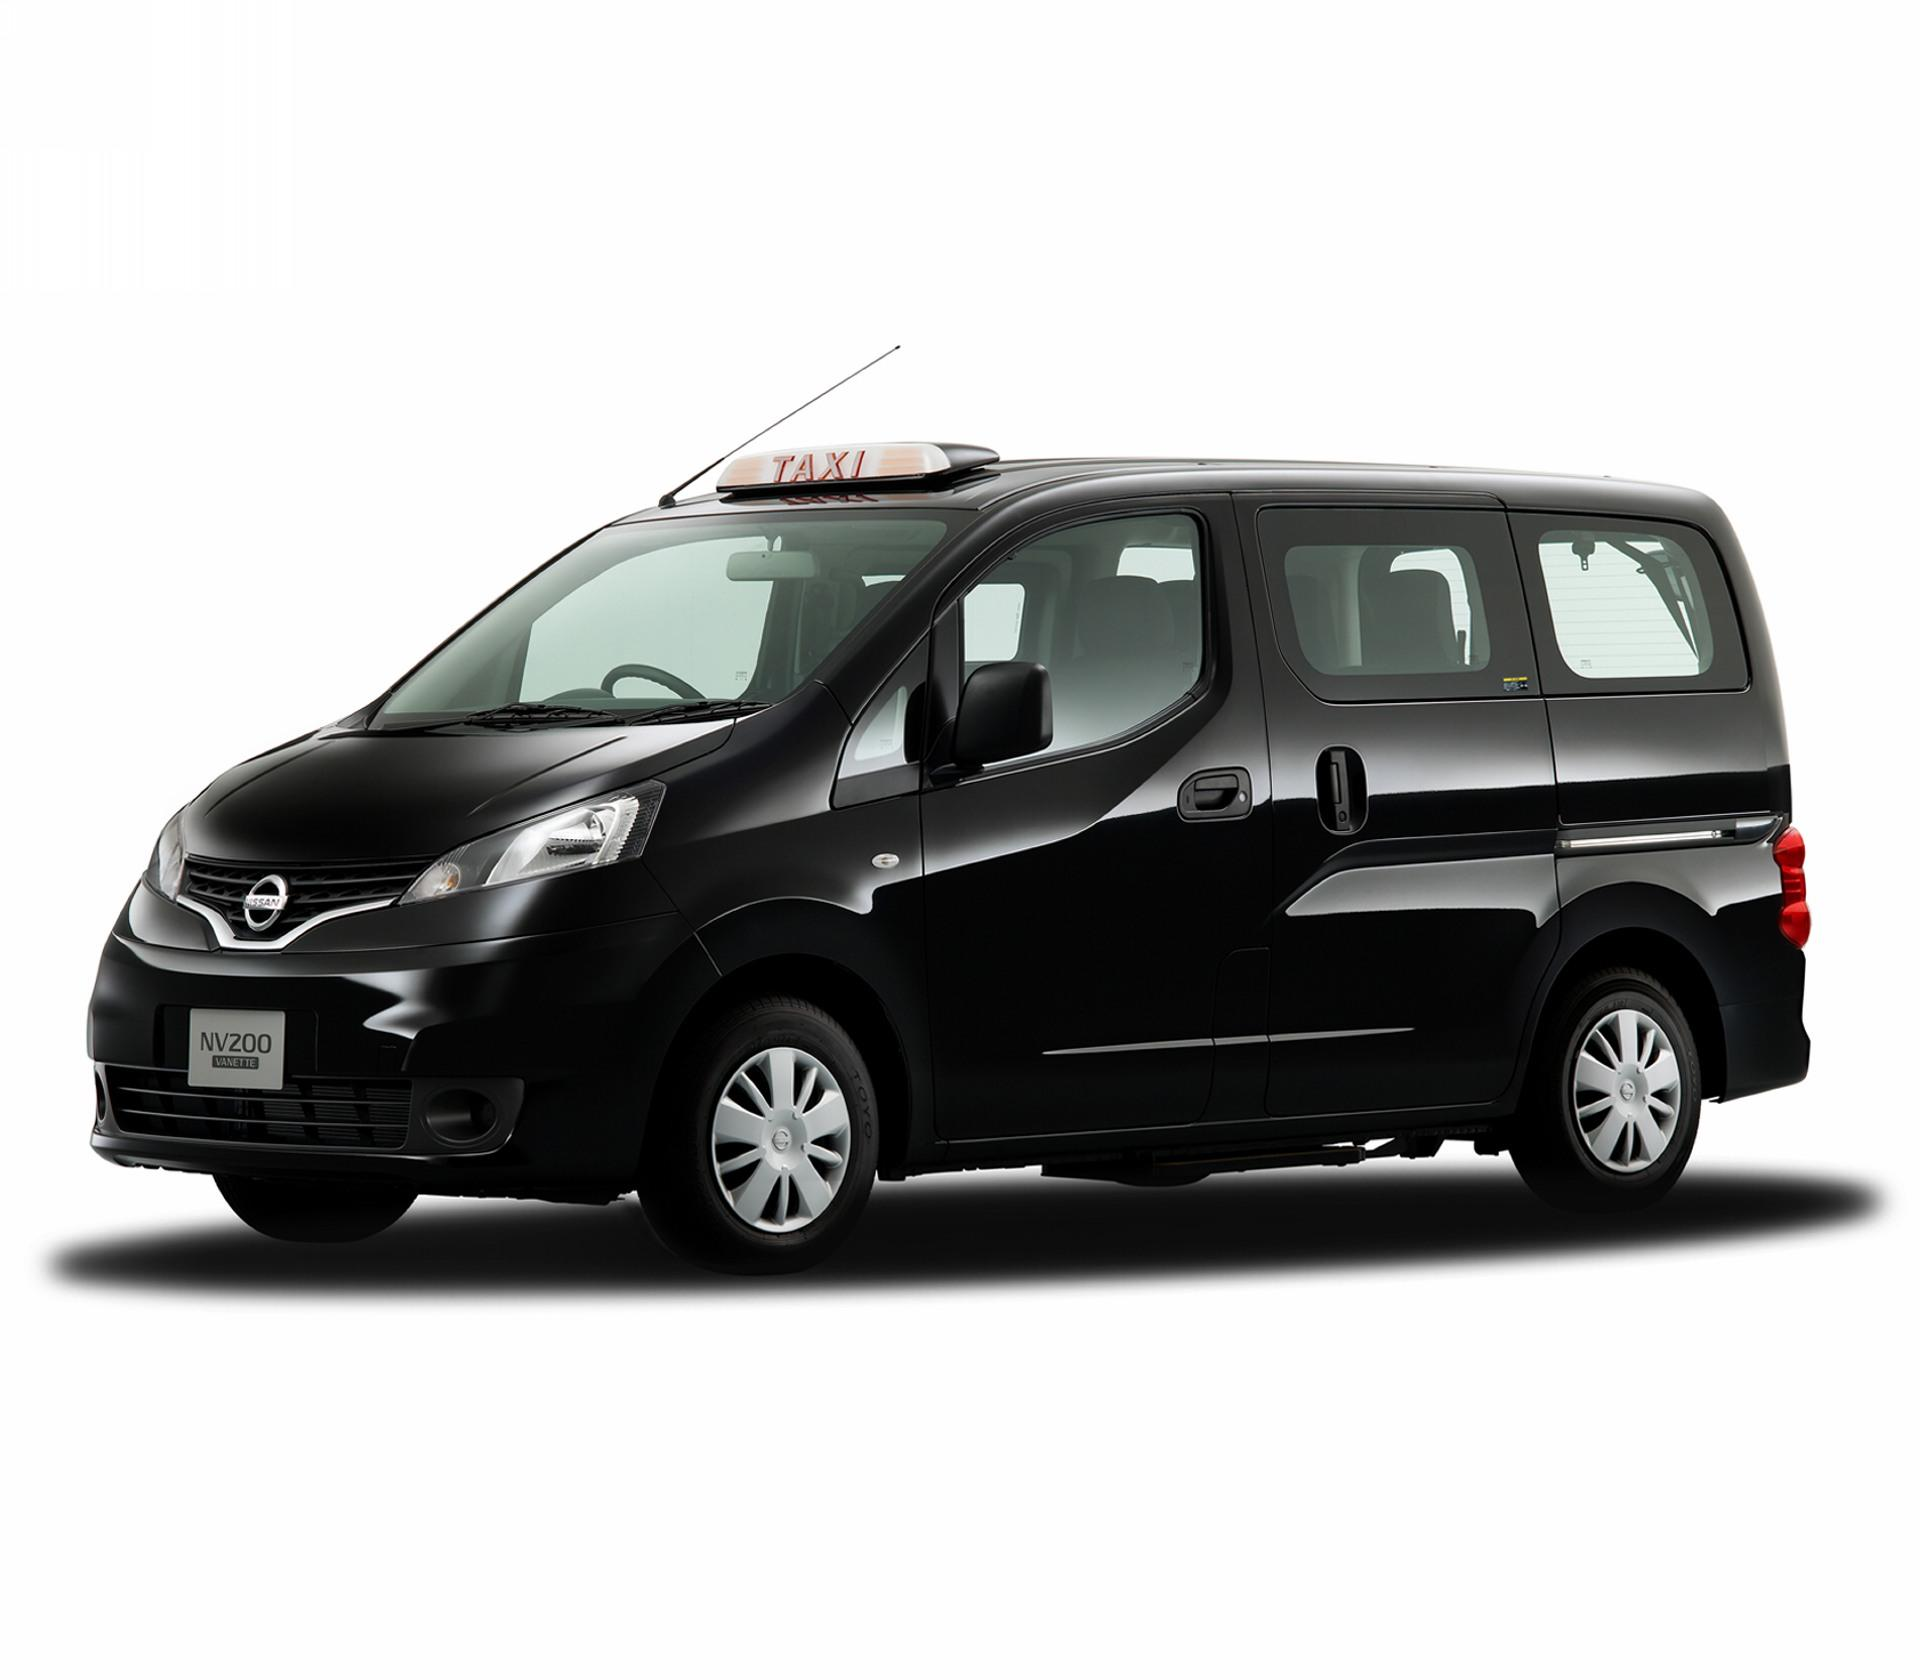 Nissan Nv200 Vanette Taxi News And Information